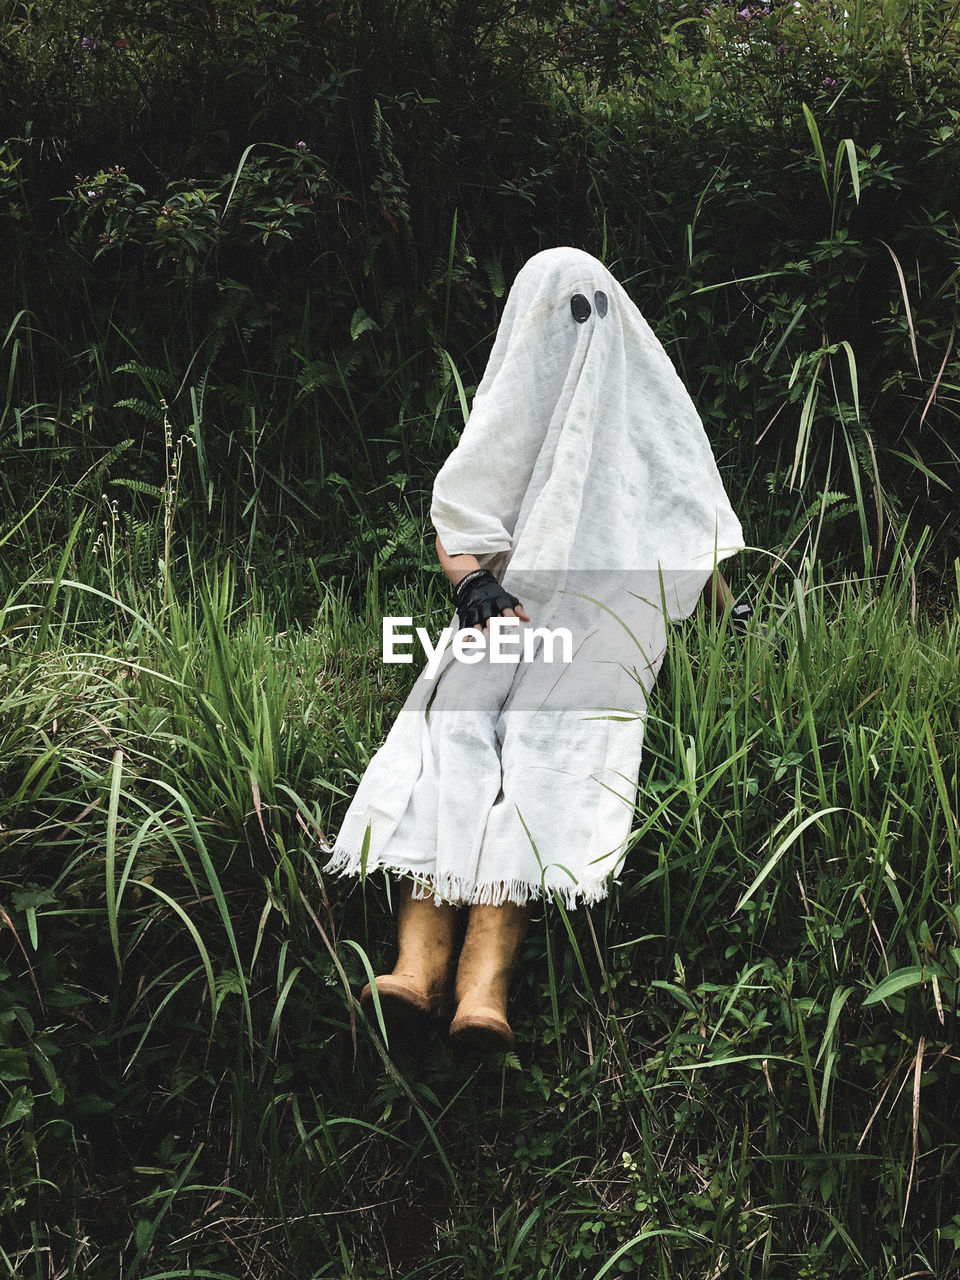 Person disguised as ghost for halloween in green grass field